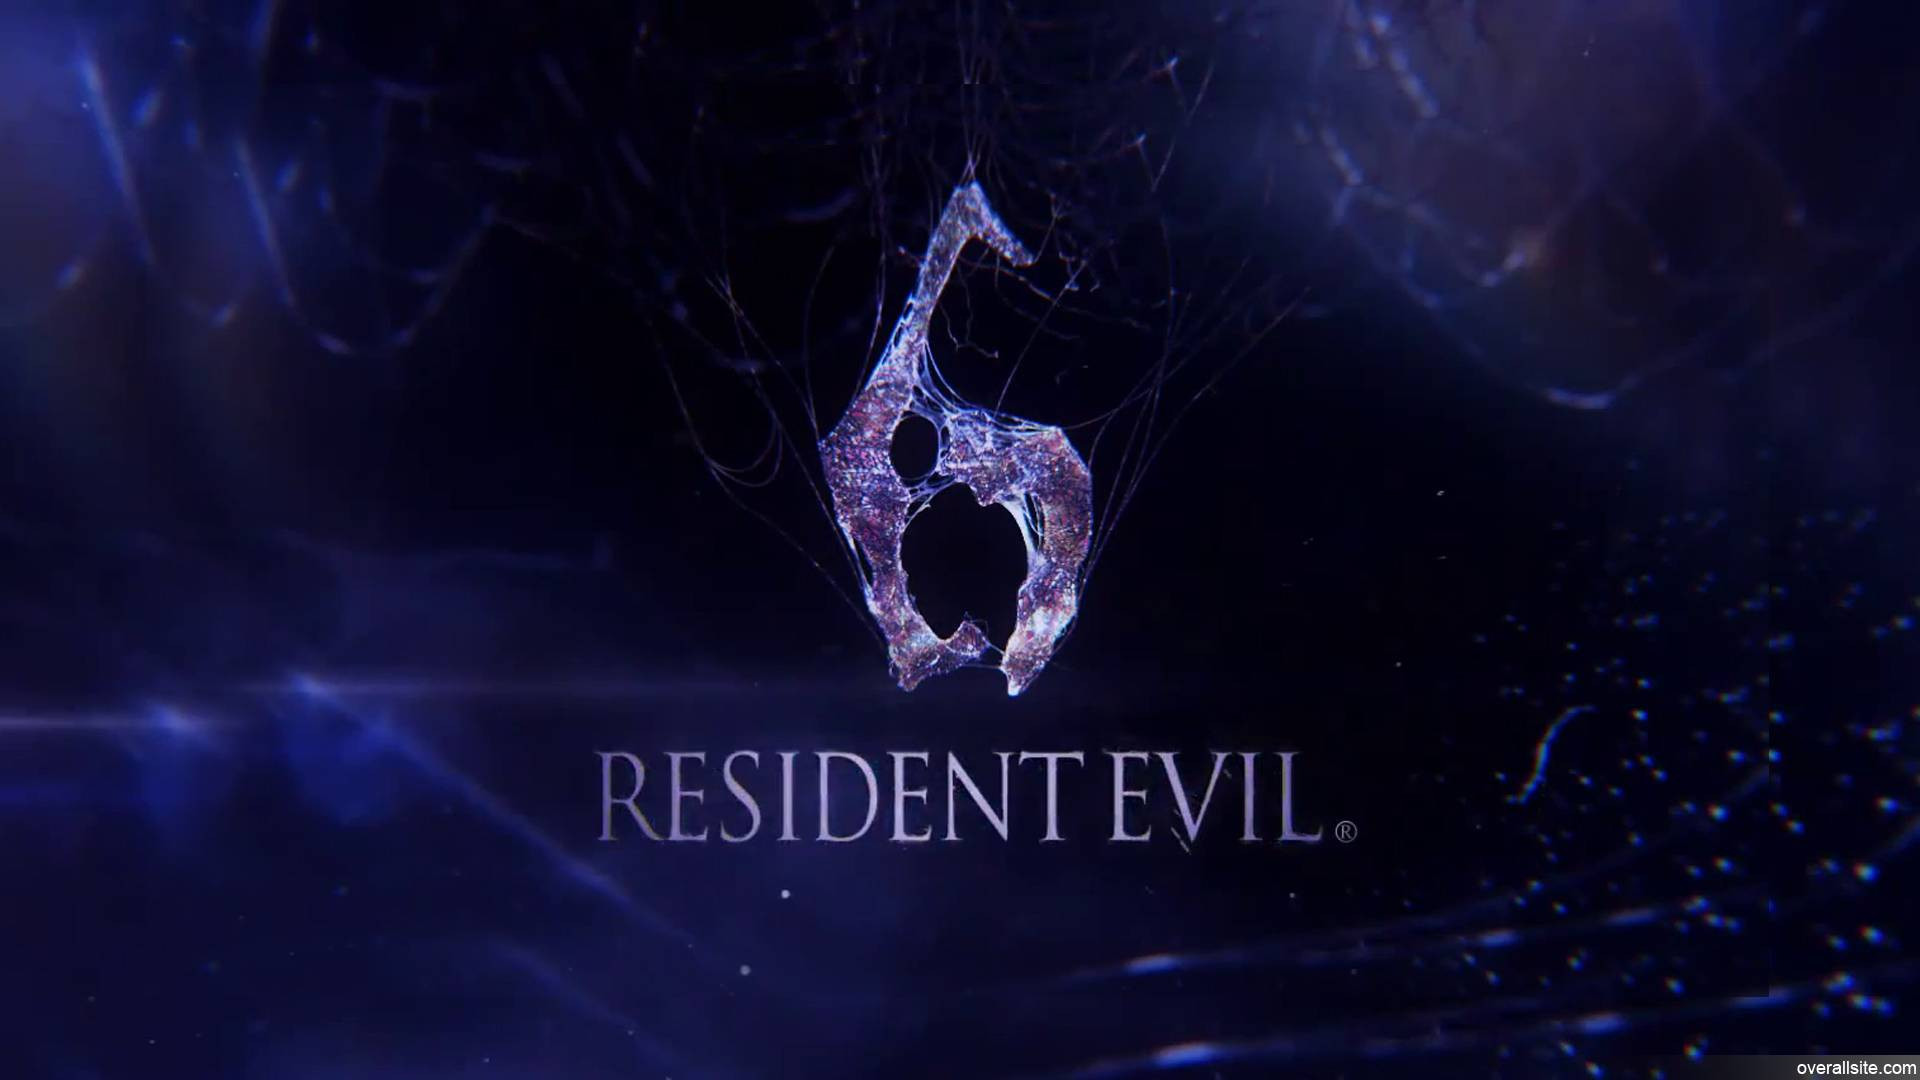 Resident Evil 6 Wallpapers In HD « GamingBolt.com: Video